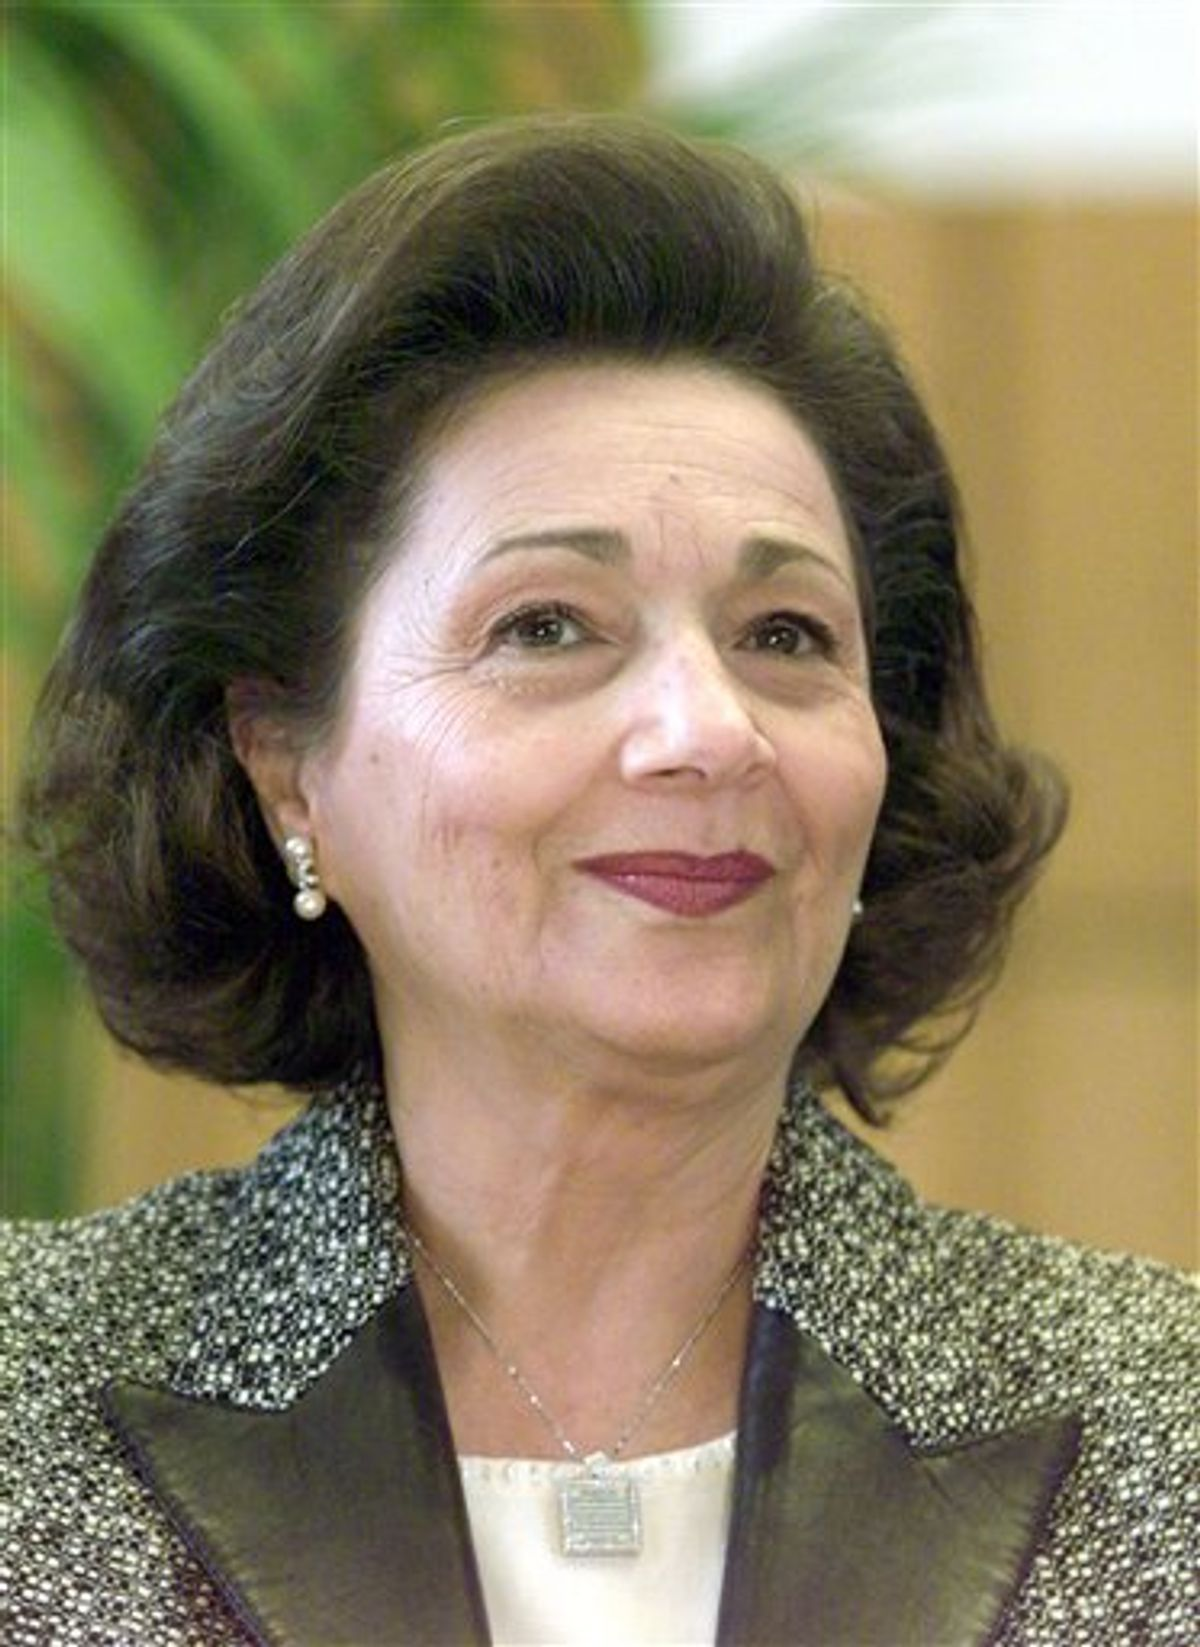 FILE - In this Feb. 19, 2003 file photo, Suzanne Mubarak, wife of Egypt's President Hosni Mubarak, smiles at the Free University Berlin. Egyptian authorities have ordered the detention of Suzanne Mubarak, wife of deposed President Hosni Mubarak, the government-run MENA news service says. The move on Friday May 13, 2011 comes a day after the government reported that Mubarak and his wife were questioned over suspicions they illegally amassed vast wealth. (AP Photo/Franka Bruns, File)   (Associated Press)